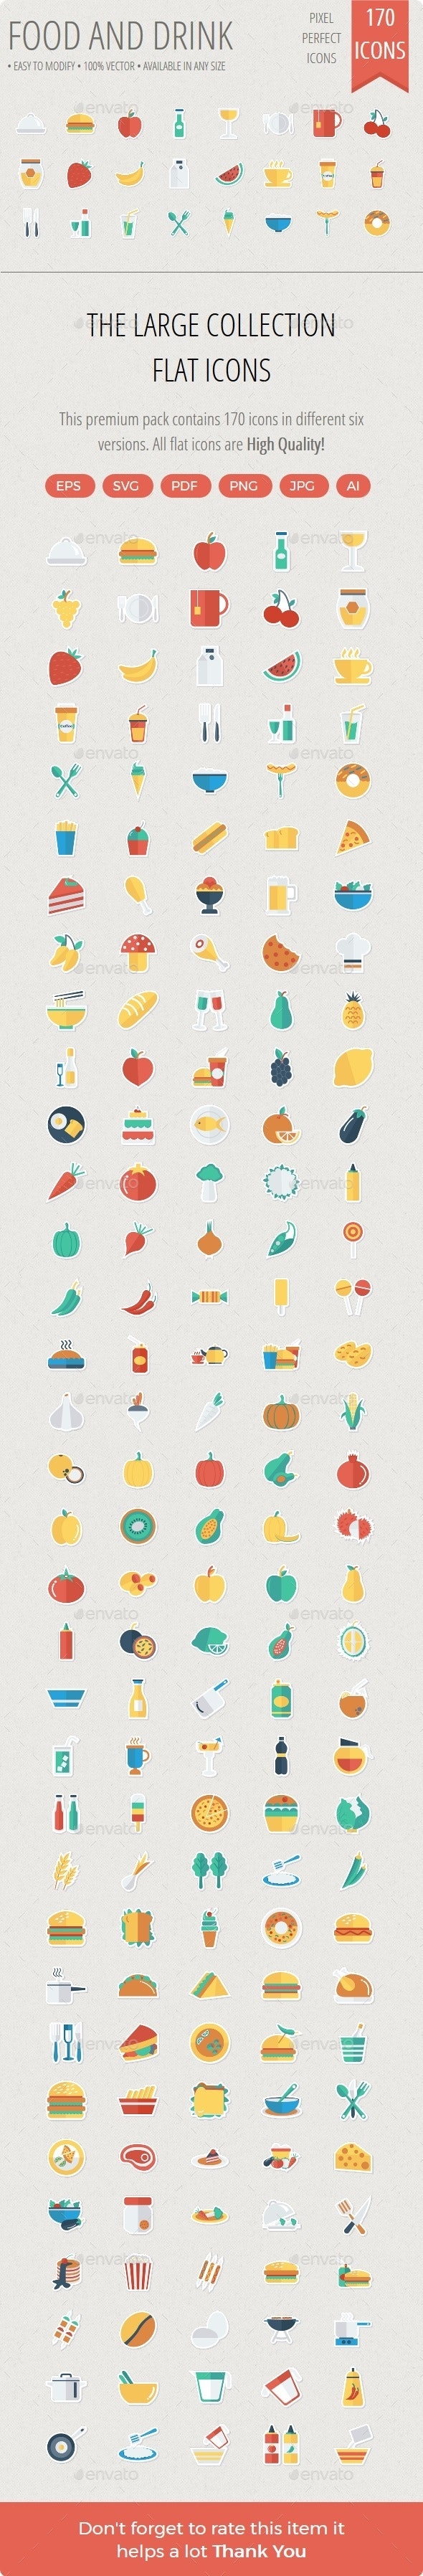 Food and Drinks Flat Paper icons - Icons